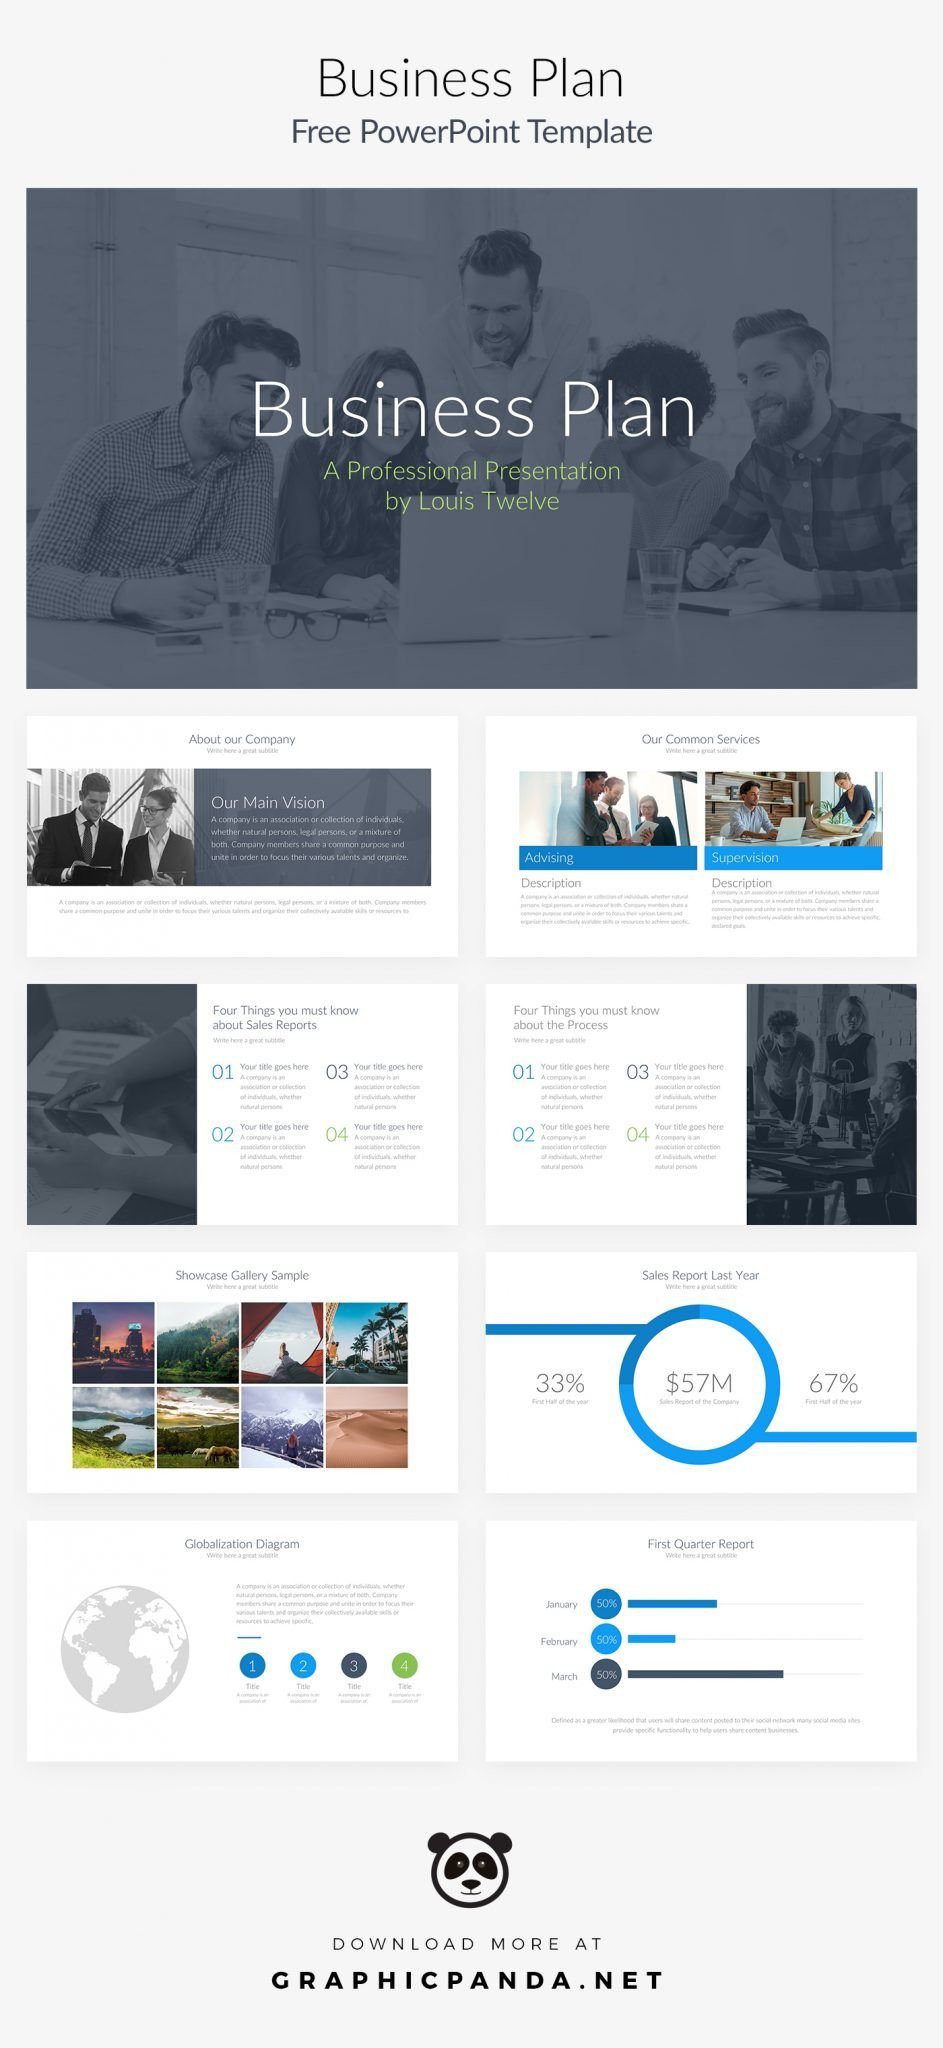 Business plan powerpoint template 10 free slides for business business plan powerpoint template 10 free slides for business proposal wajeb